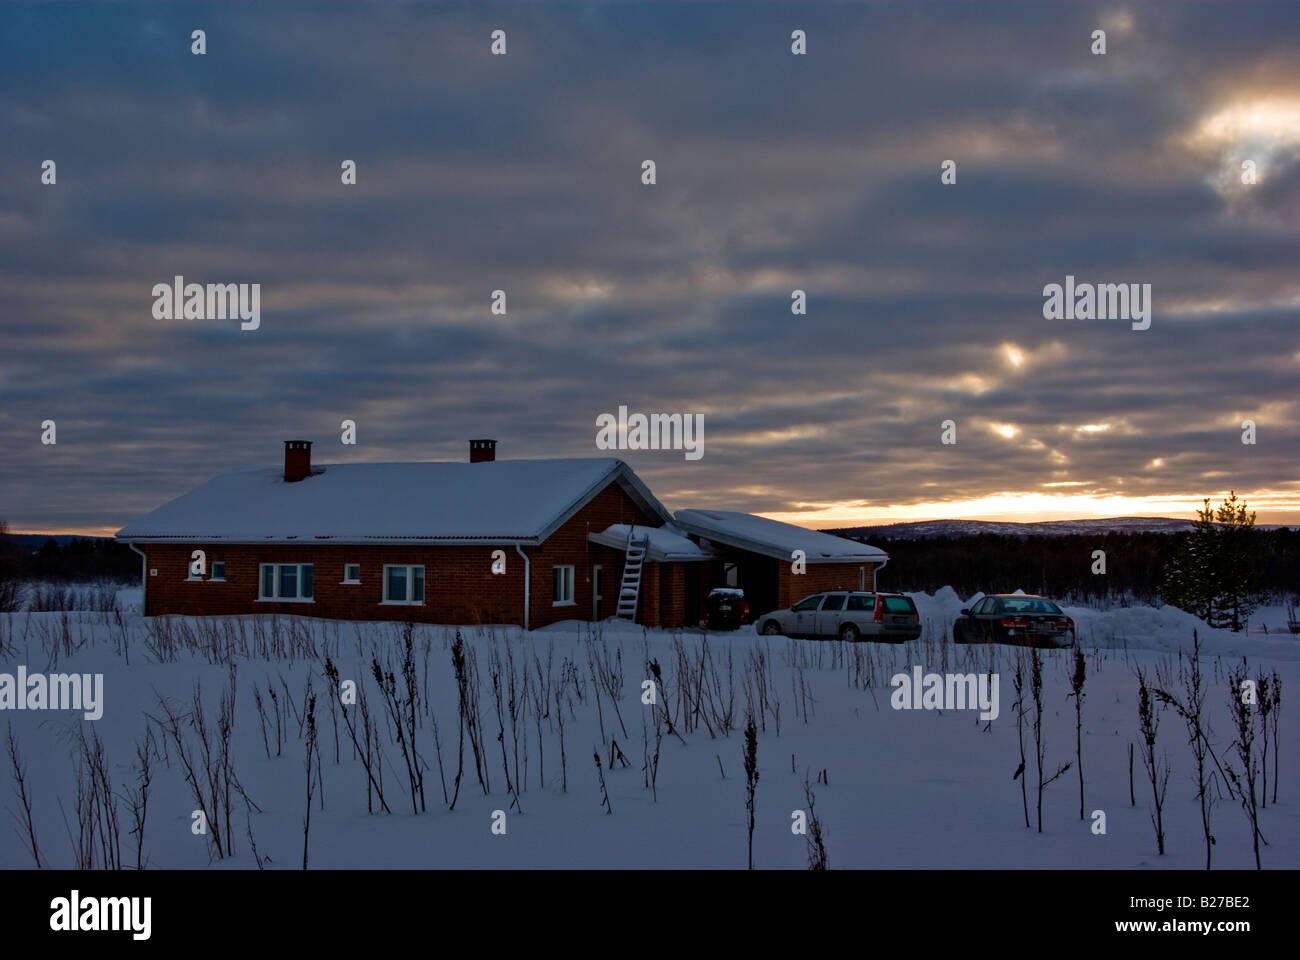 A red brick house covered in snow with three cars parked in front in the Finnish Lapland - Stock Image